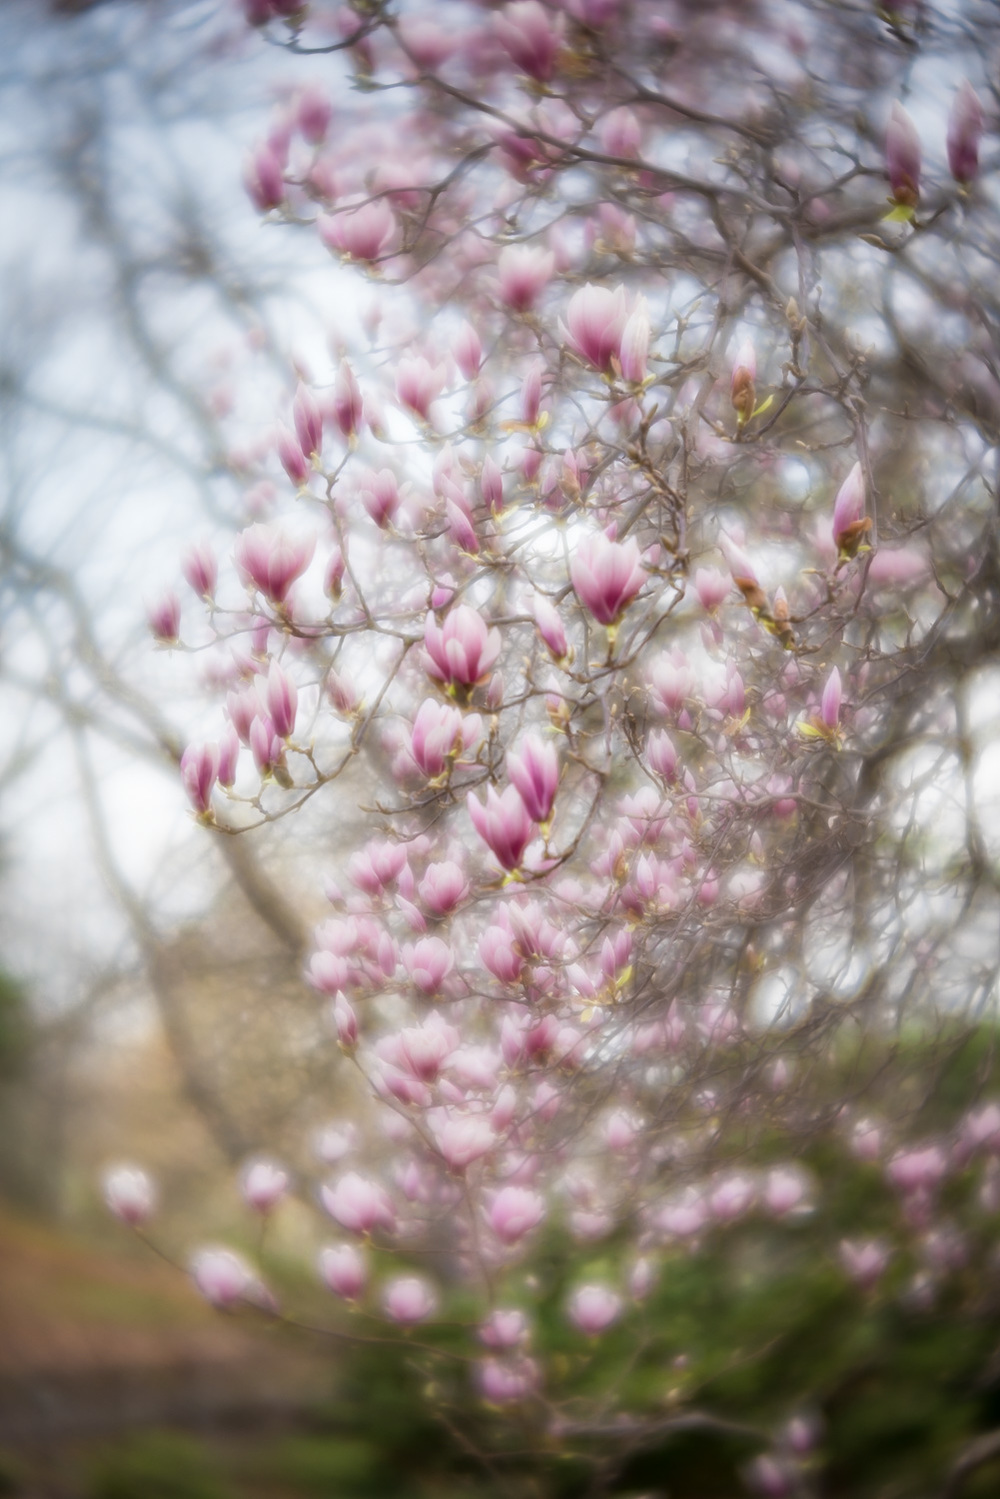 A soft and dreamy photo of magnolia blooms, taken with the lensbaby velvet 56 lens.